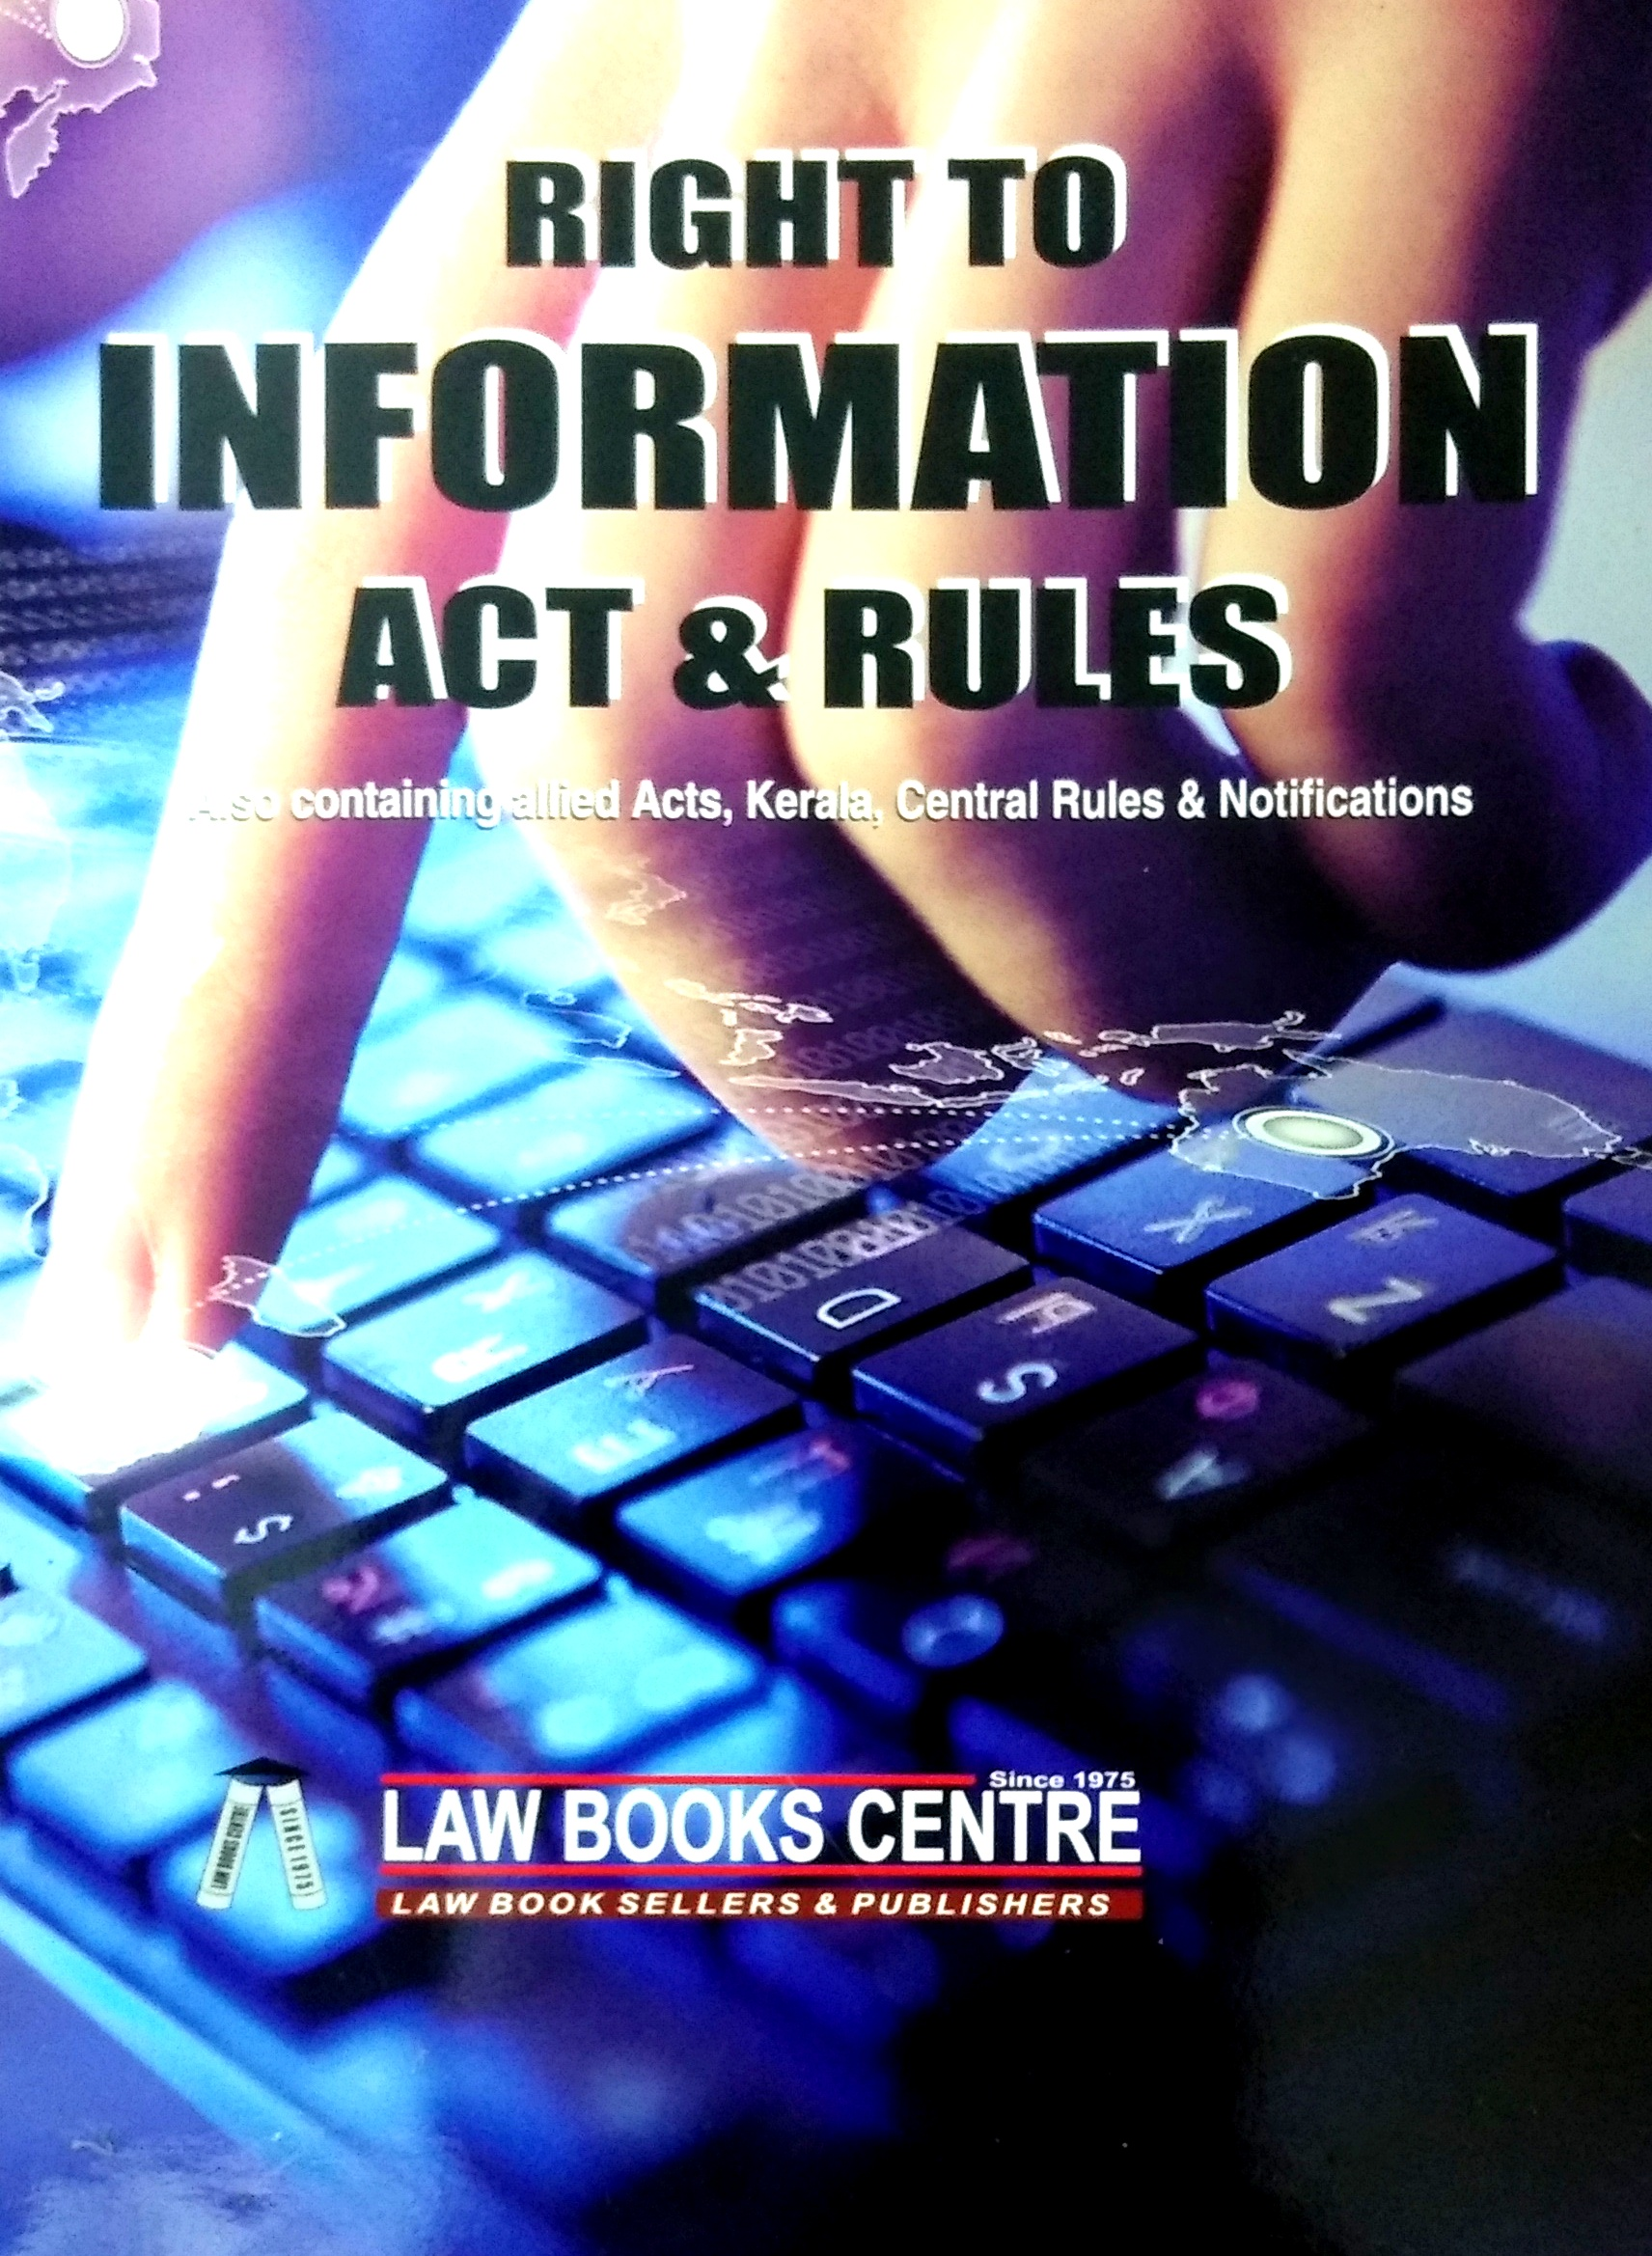 Right To Information Act & Rules (8th Edn. 2019)